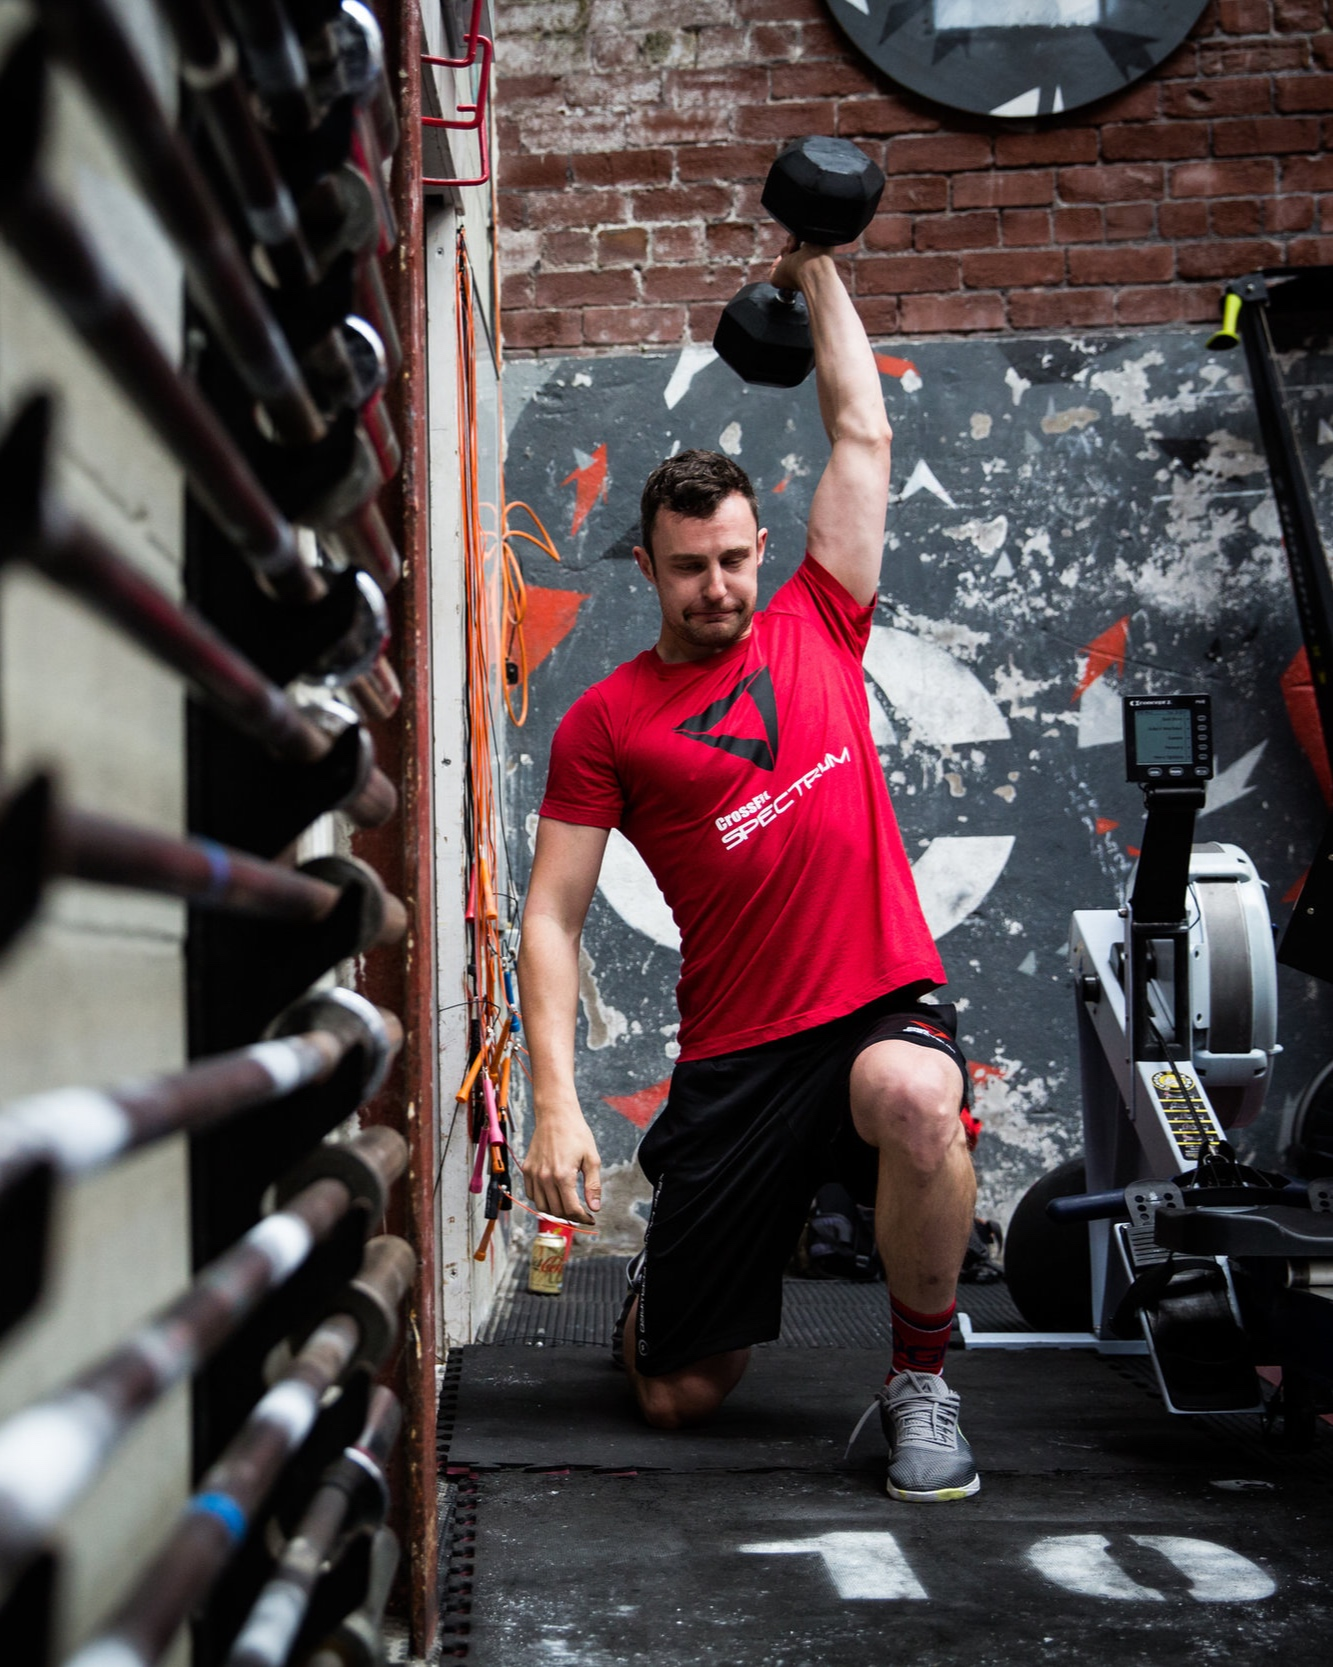 Will McCann - Will began playing football at a young age which put him on the path to sport/fitness and being active. He started strength training at a conventional gym doing the usual boring routines until he was introduced to CrossFit around 5 years ago and was instantly hooked. Will has competed at many competitions including the Rainhill trials and Glacier Games. This turned into a passion for coaching which he started to do around 3 years ago and never looked back. Will is about to graduate from his Sport and Exercise Science degree this summer as well as having CrossFit level 2 British weightlifting level 2 and PT level 3